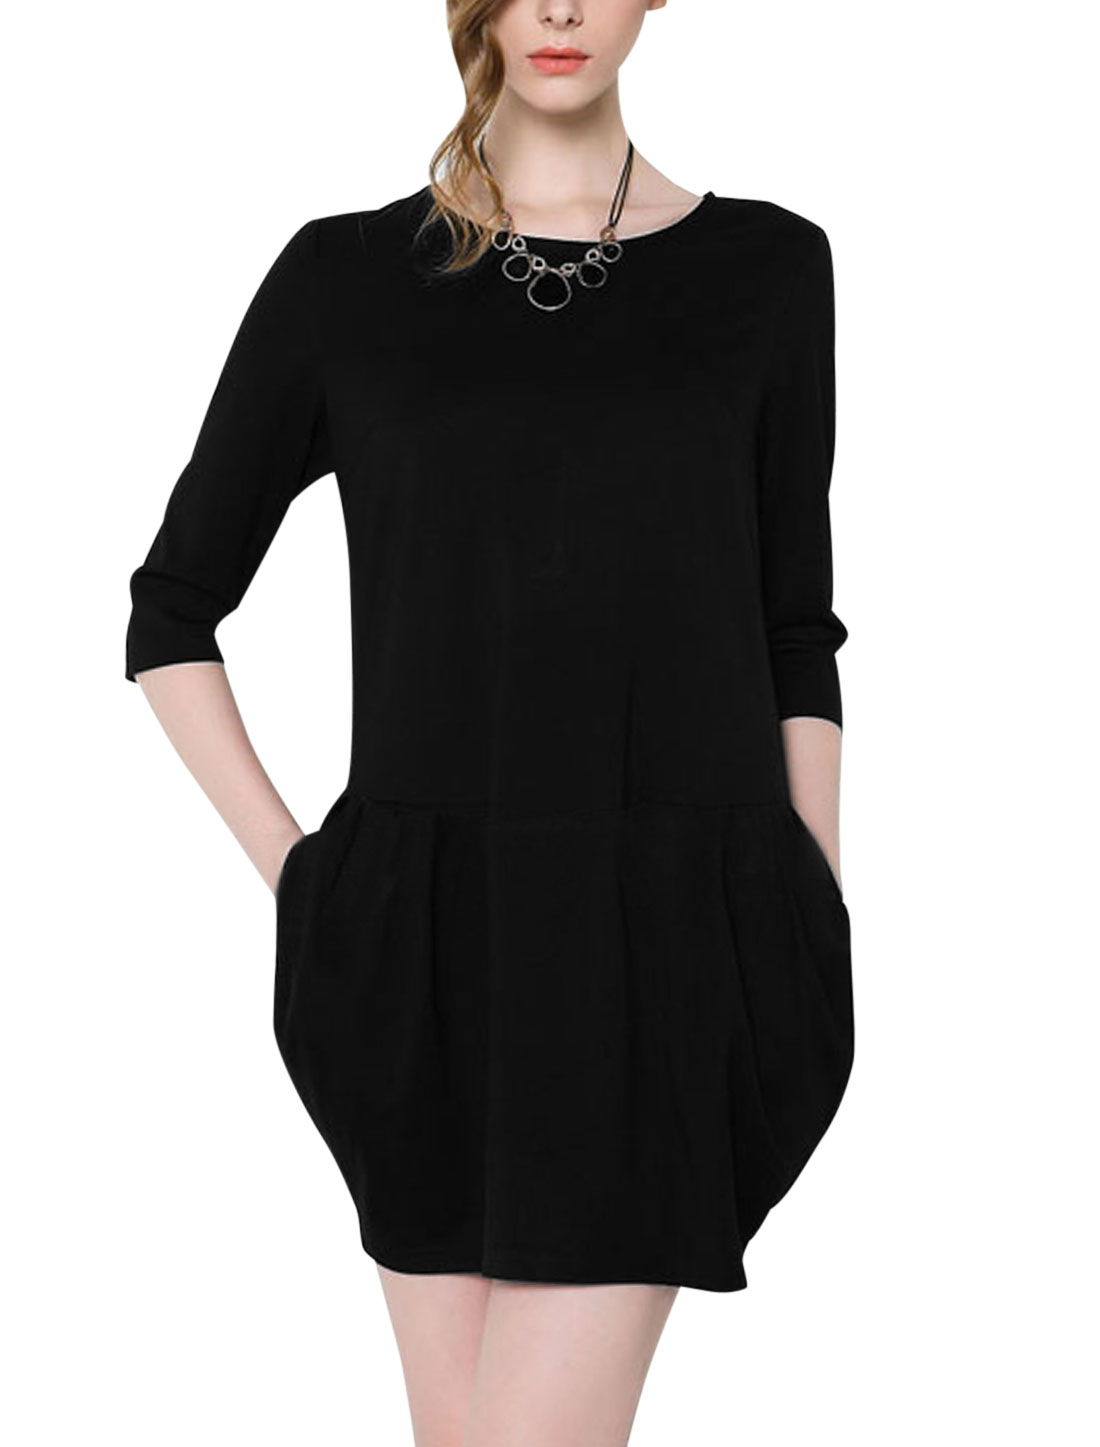 Ladies Black Zip Down Back Ruched Detail Unlined 3/4 Sleeves Dress M